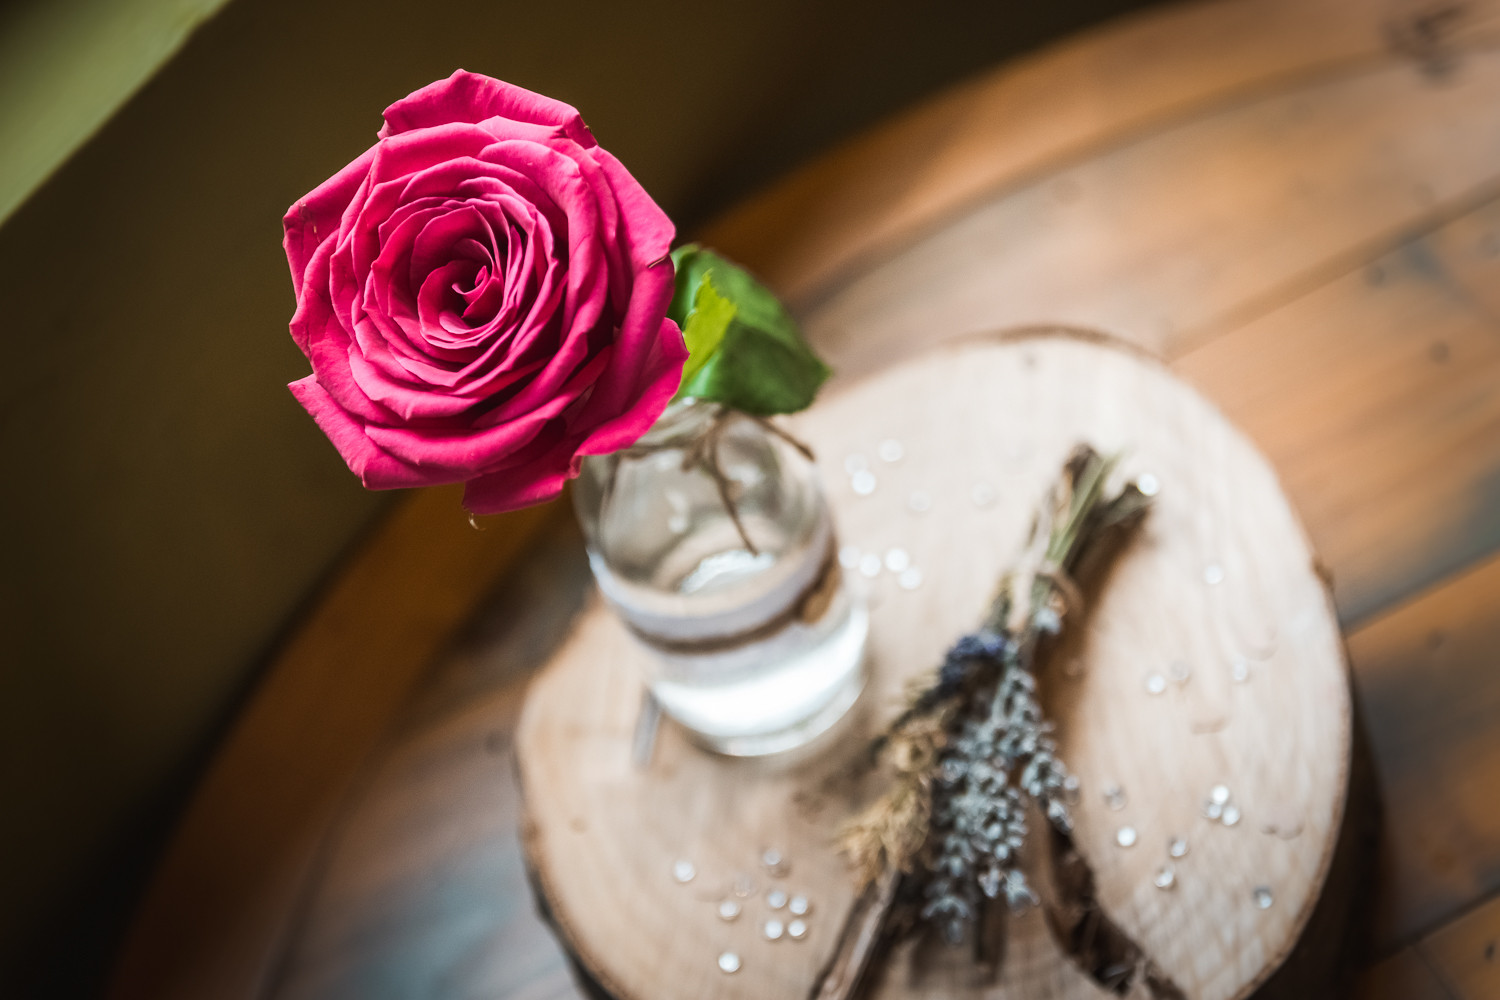 A single rose and slice of wood are shown as table decorations at The Potting Shed, Beverley.